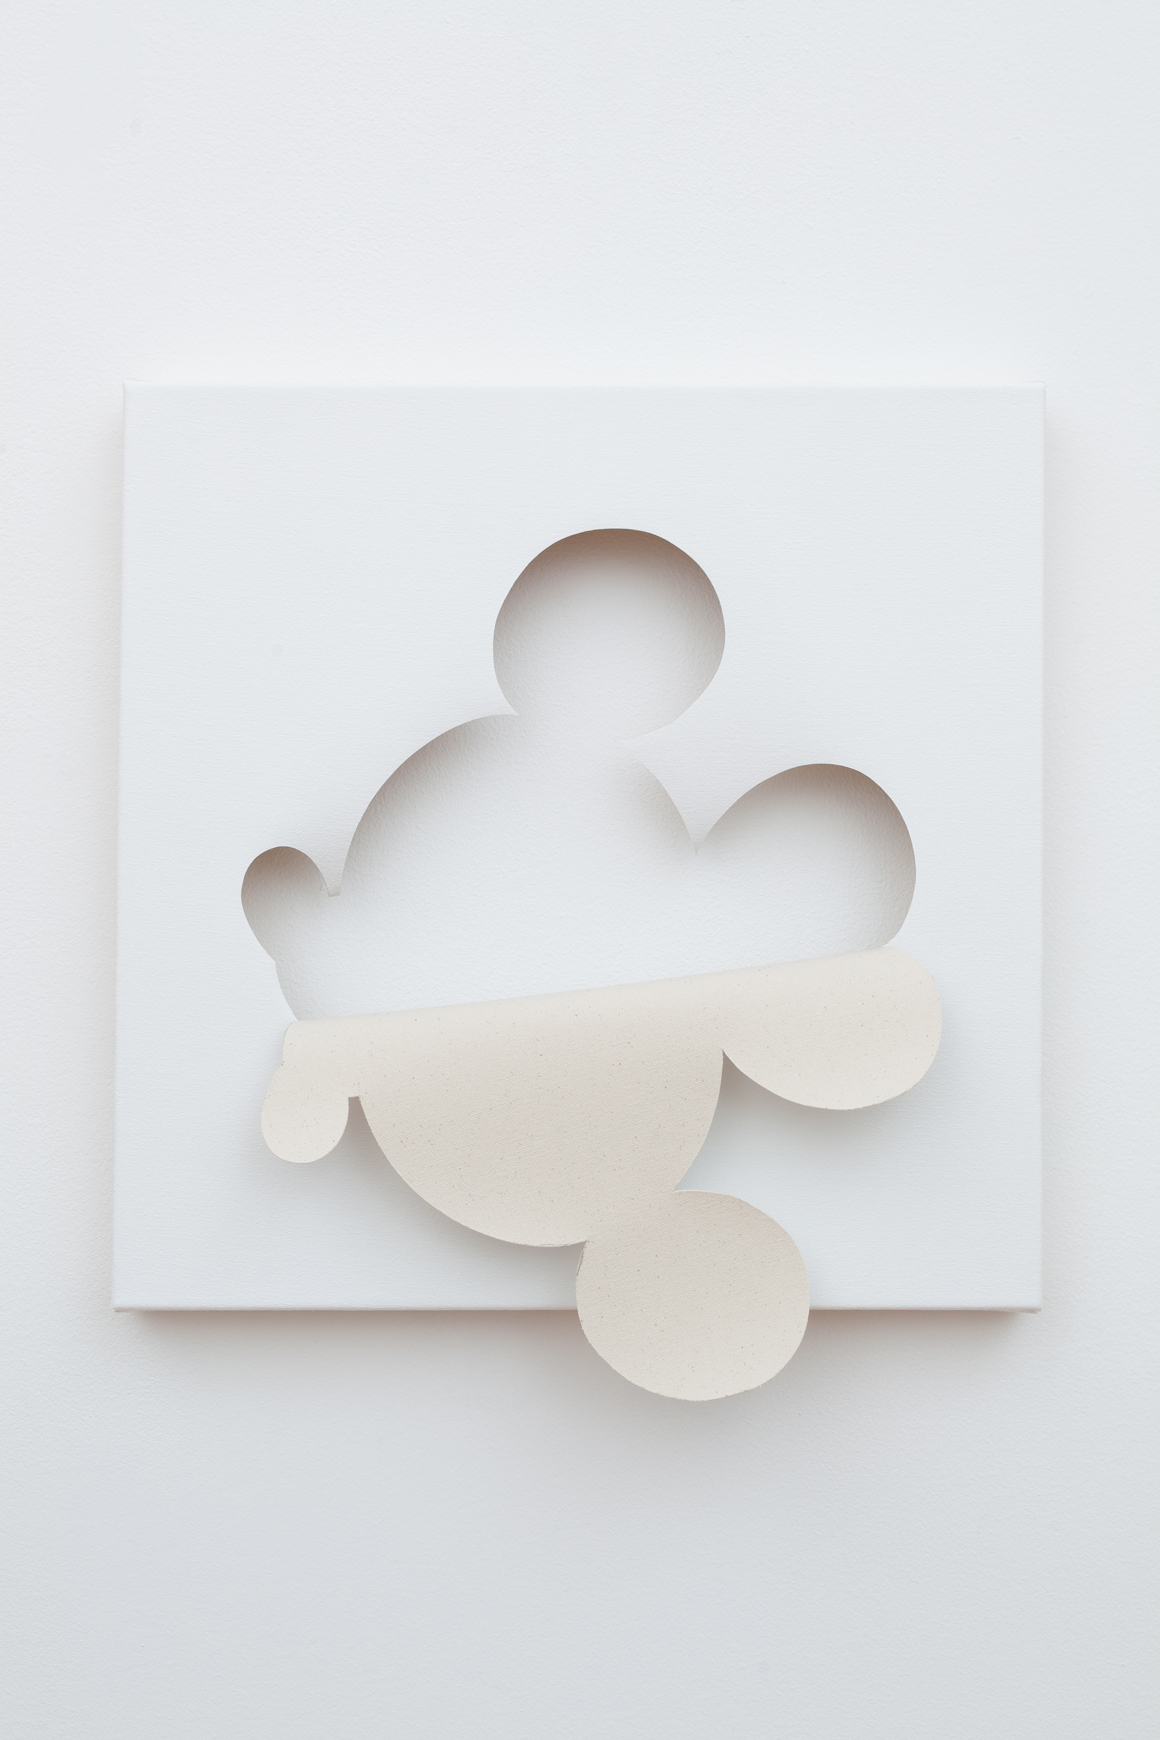 "<p><span class=""name"">Zach Reini</span><br><em>Tear Us Apart</em><span class='media'>Latex on canvas, cut</span>18 x 18 in (45.7 x 45.7 cm)<br>2016<br><a class='inquire' href='mailto:info@gildargallery.com?subject=Artwork Inquiry ZREI0032&body=I am interested in finding out more about Tear Us Apart by Zach Reini'>Inquire</a></p>"